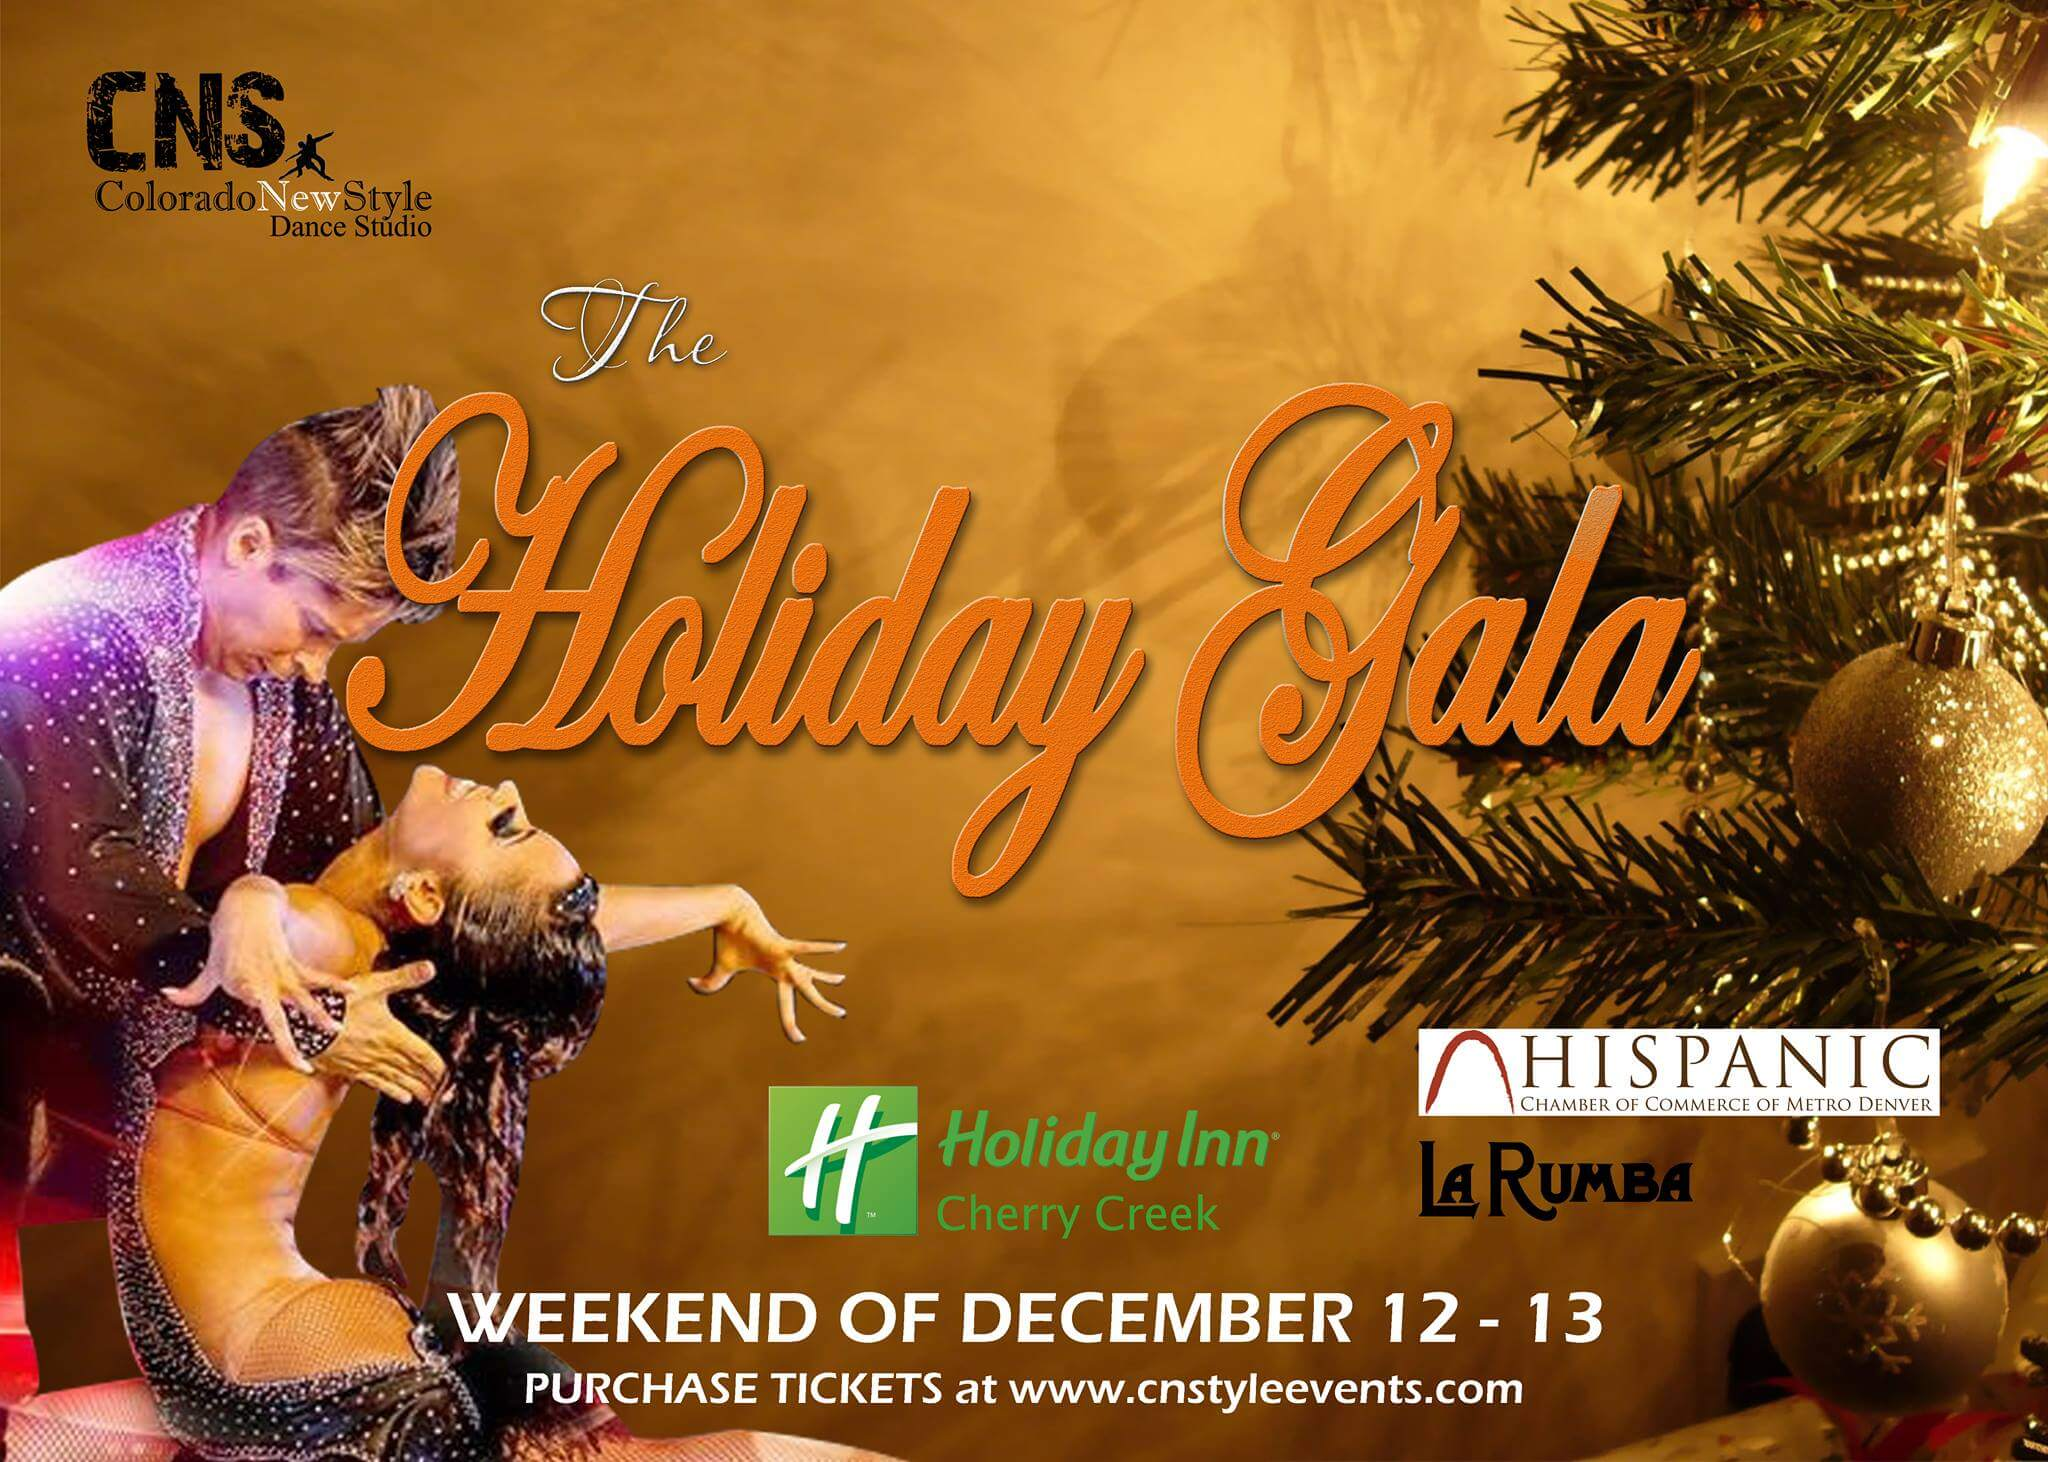 Holiday Event Guide 2015 in Colorado | The Denver Ear